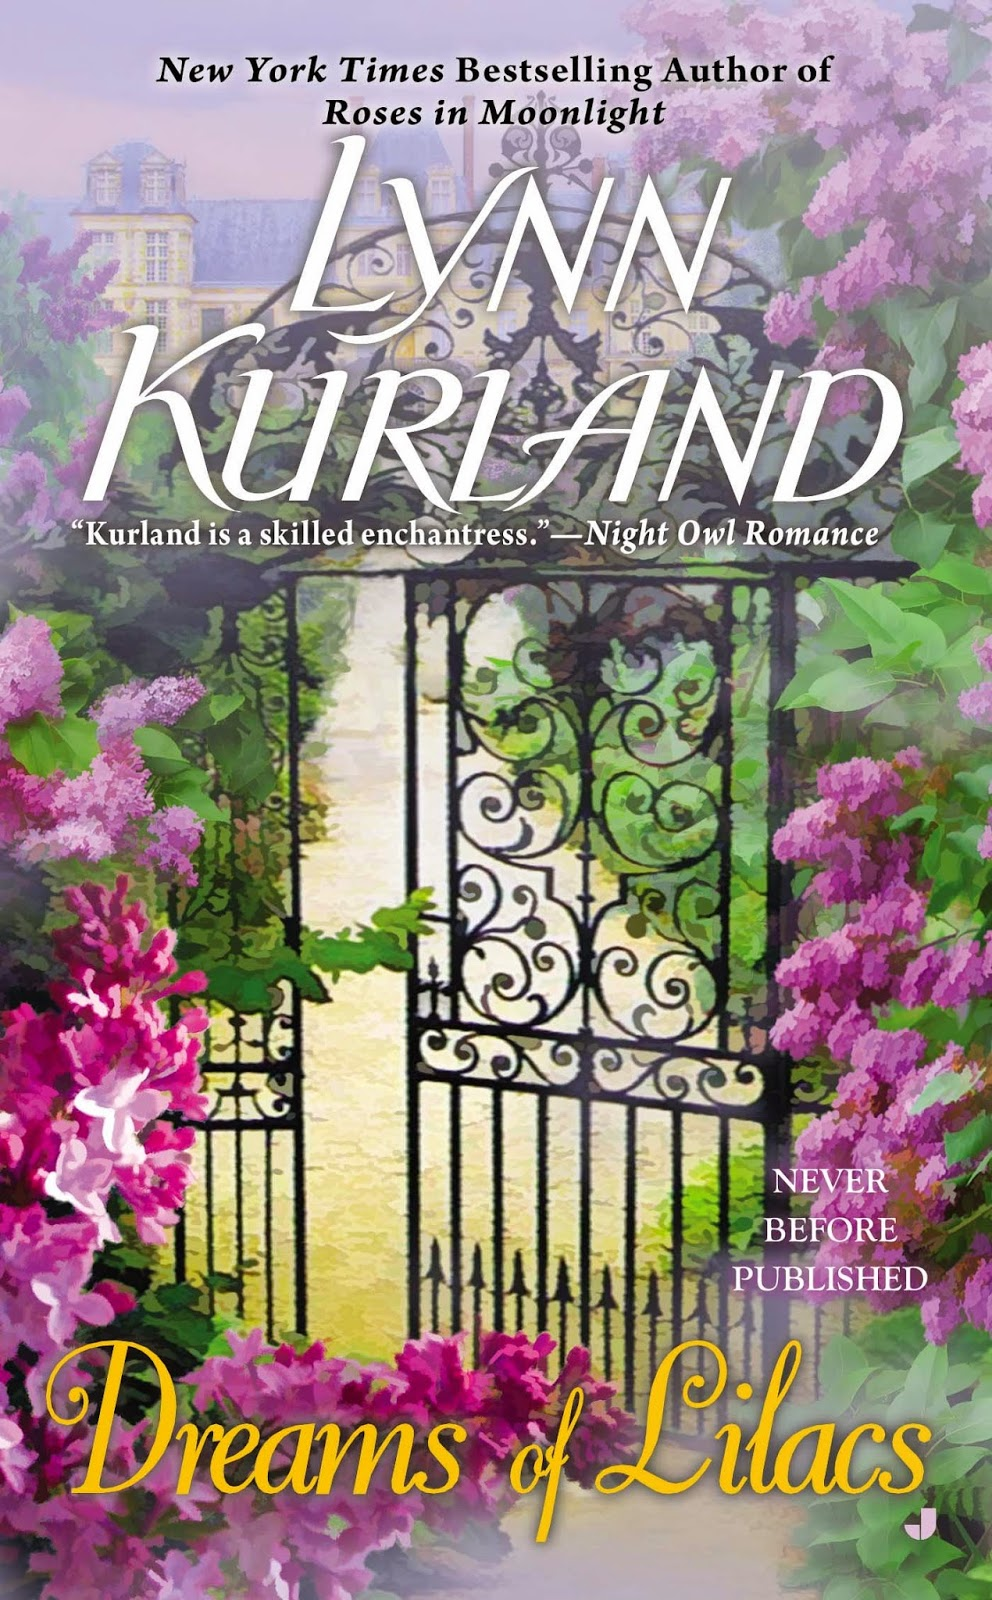 Ive Read Every Romance That Lynn Kurland Has Ever Written I Think Shes The Best Writer And Its Been Fun To About De Piaget MacLeod